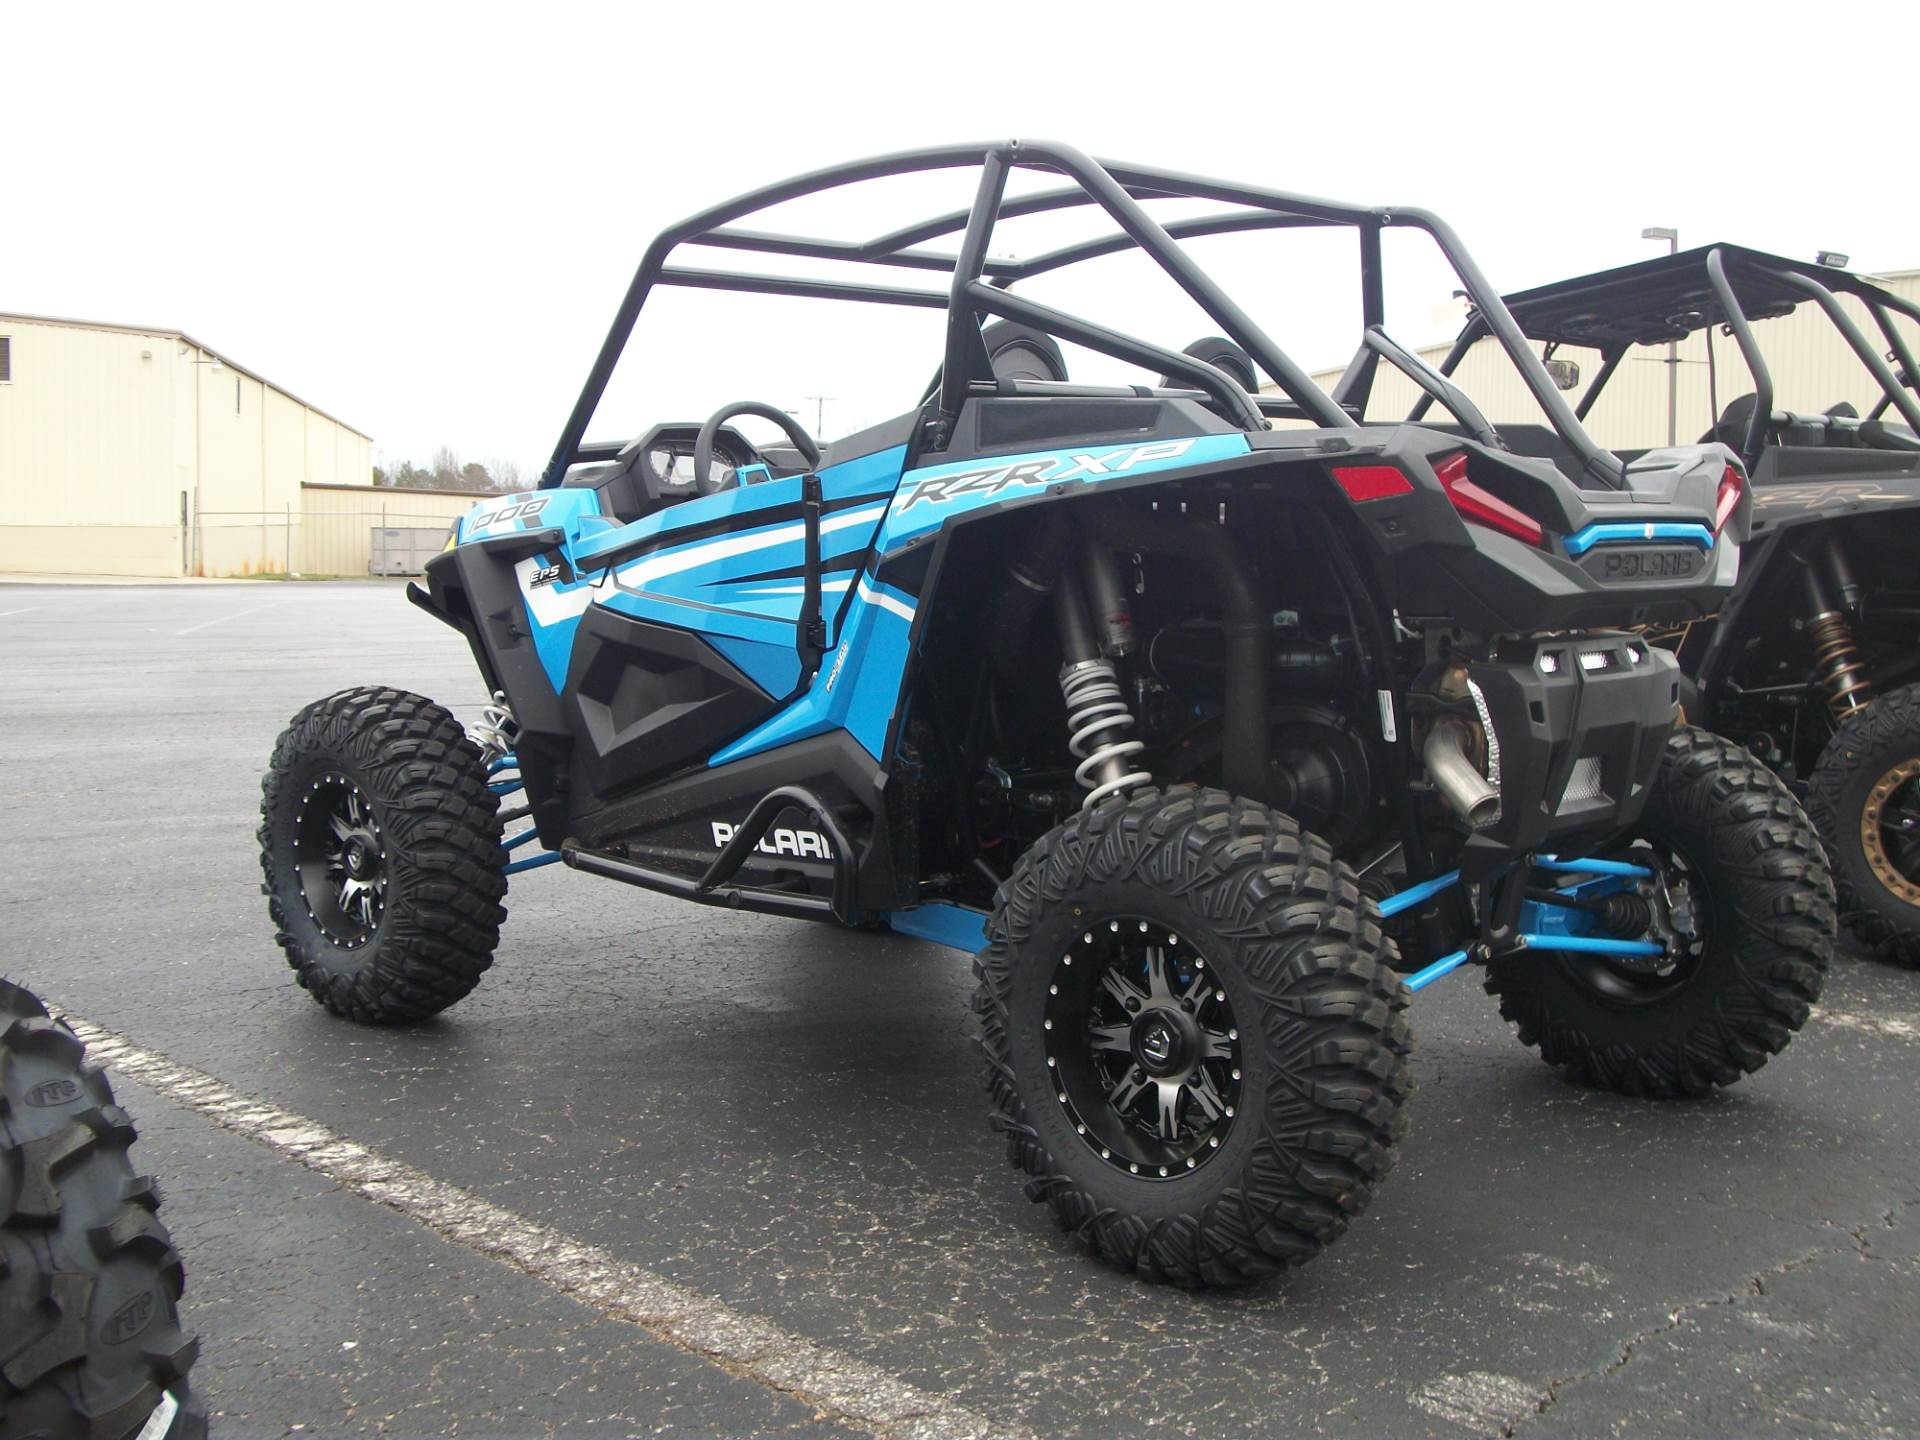 2019 Polaris RZR XP 1000 in Statesville, North Carolina - Photo 4